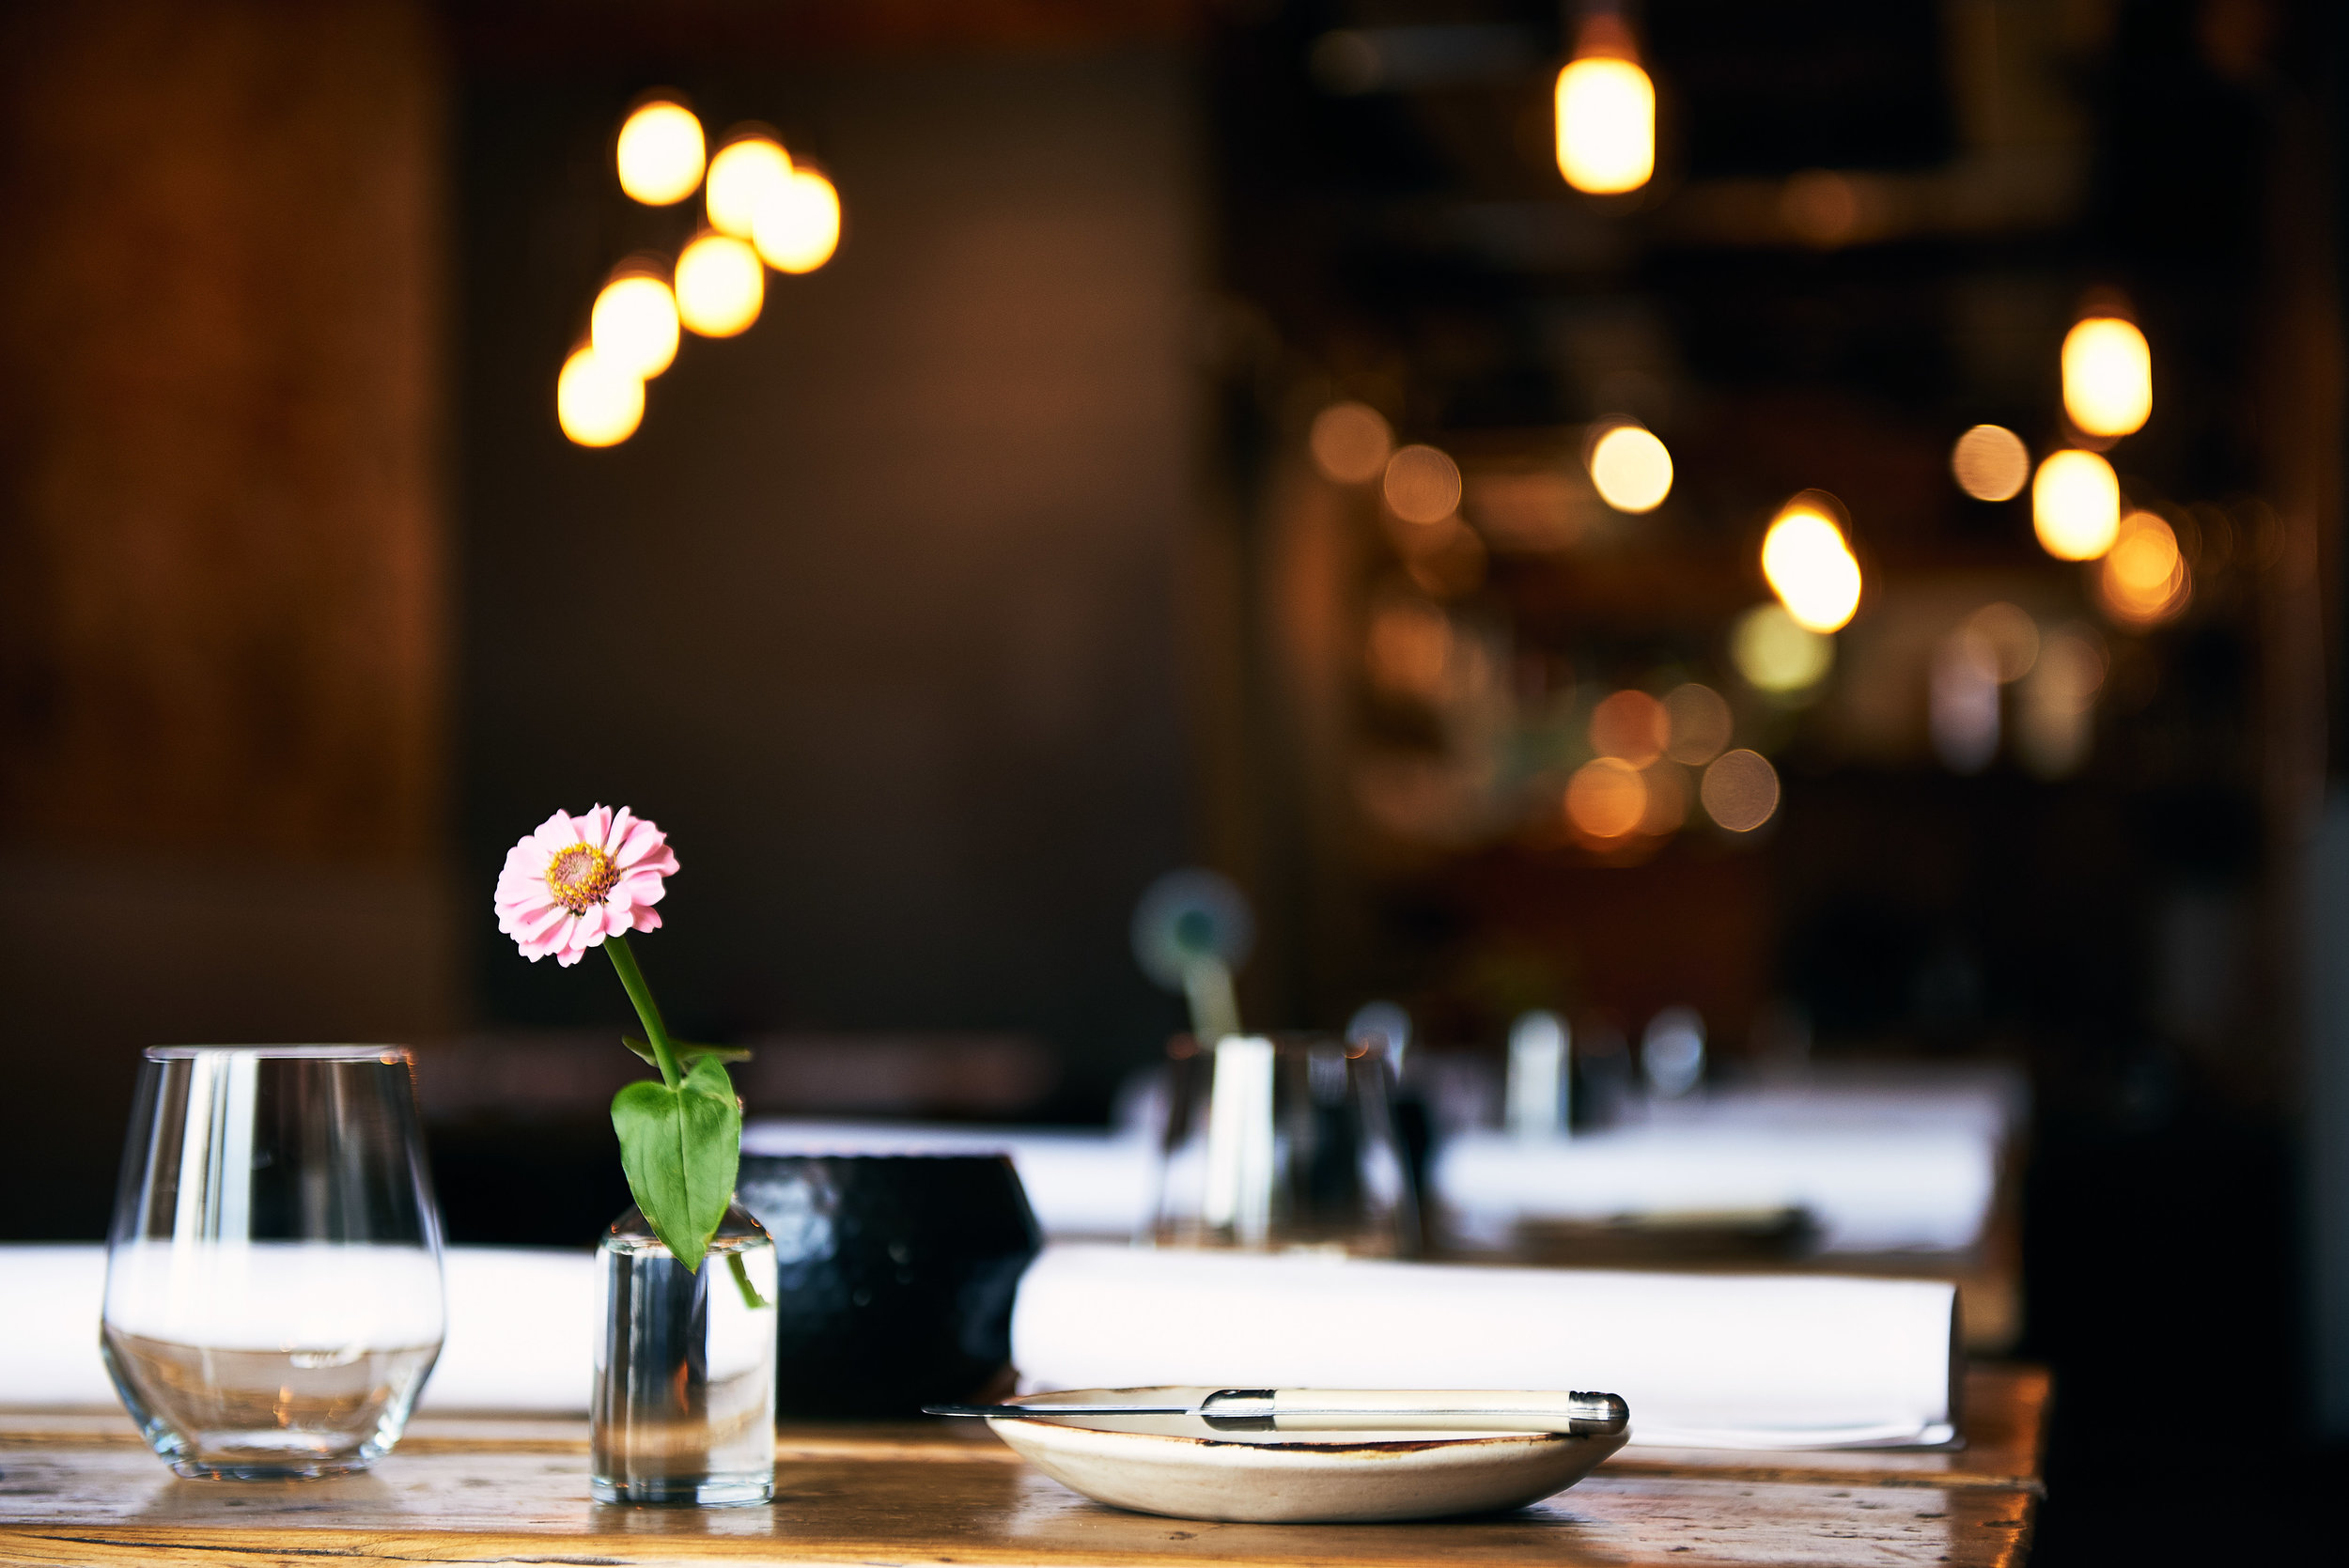 cool restaurants in essex, best restaurants in essex, places to eat in south east essex